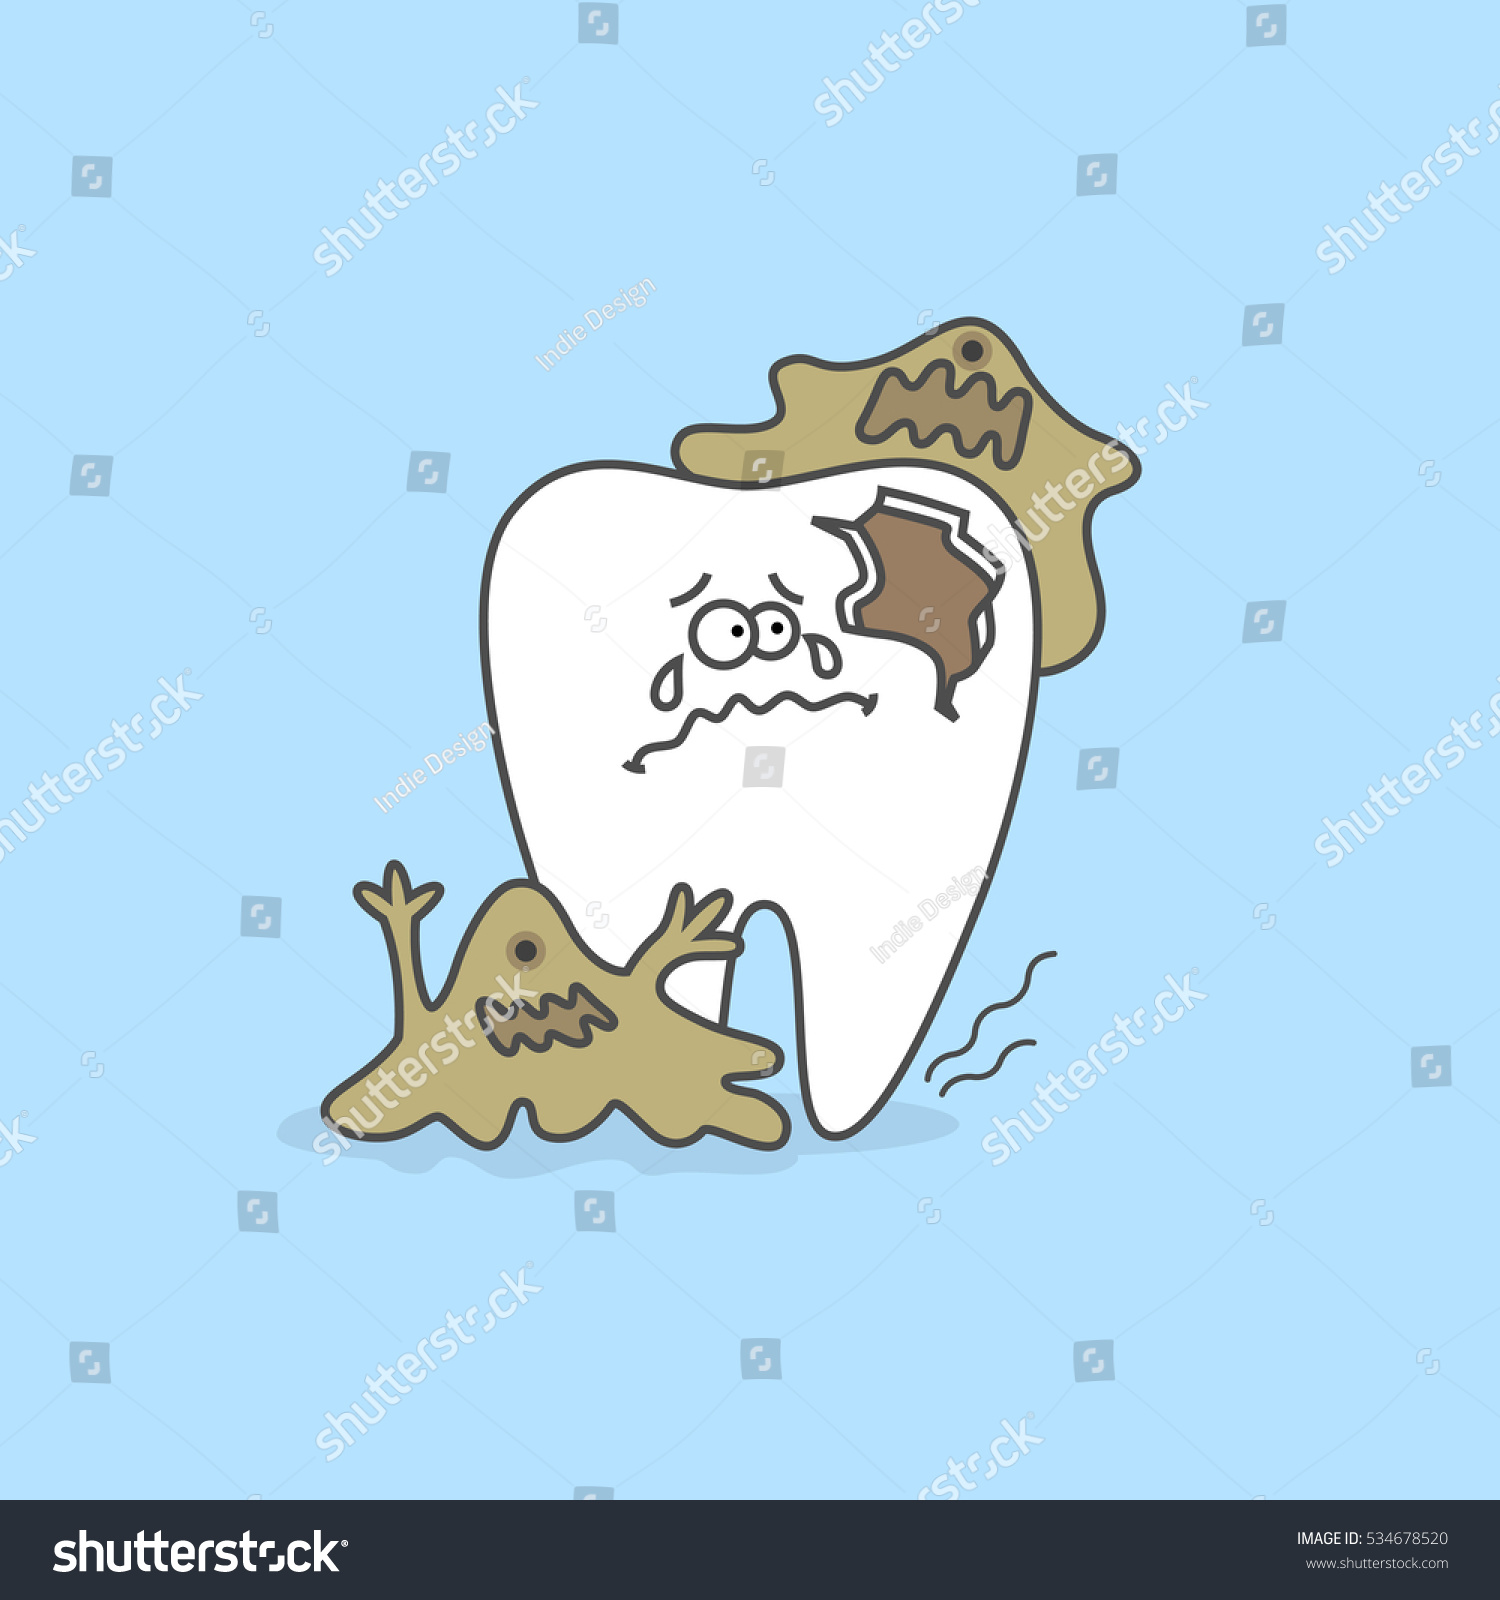 Cartoon tooth with caries and bacteria Dental care concept and hygiene